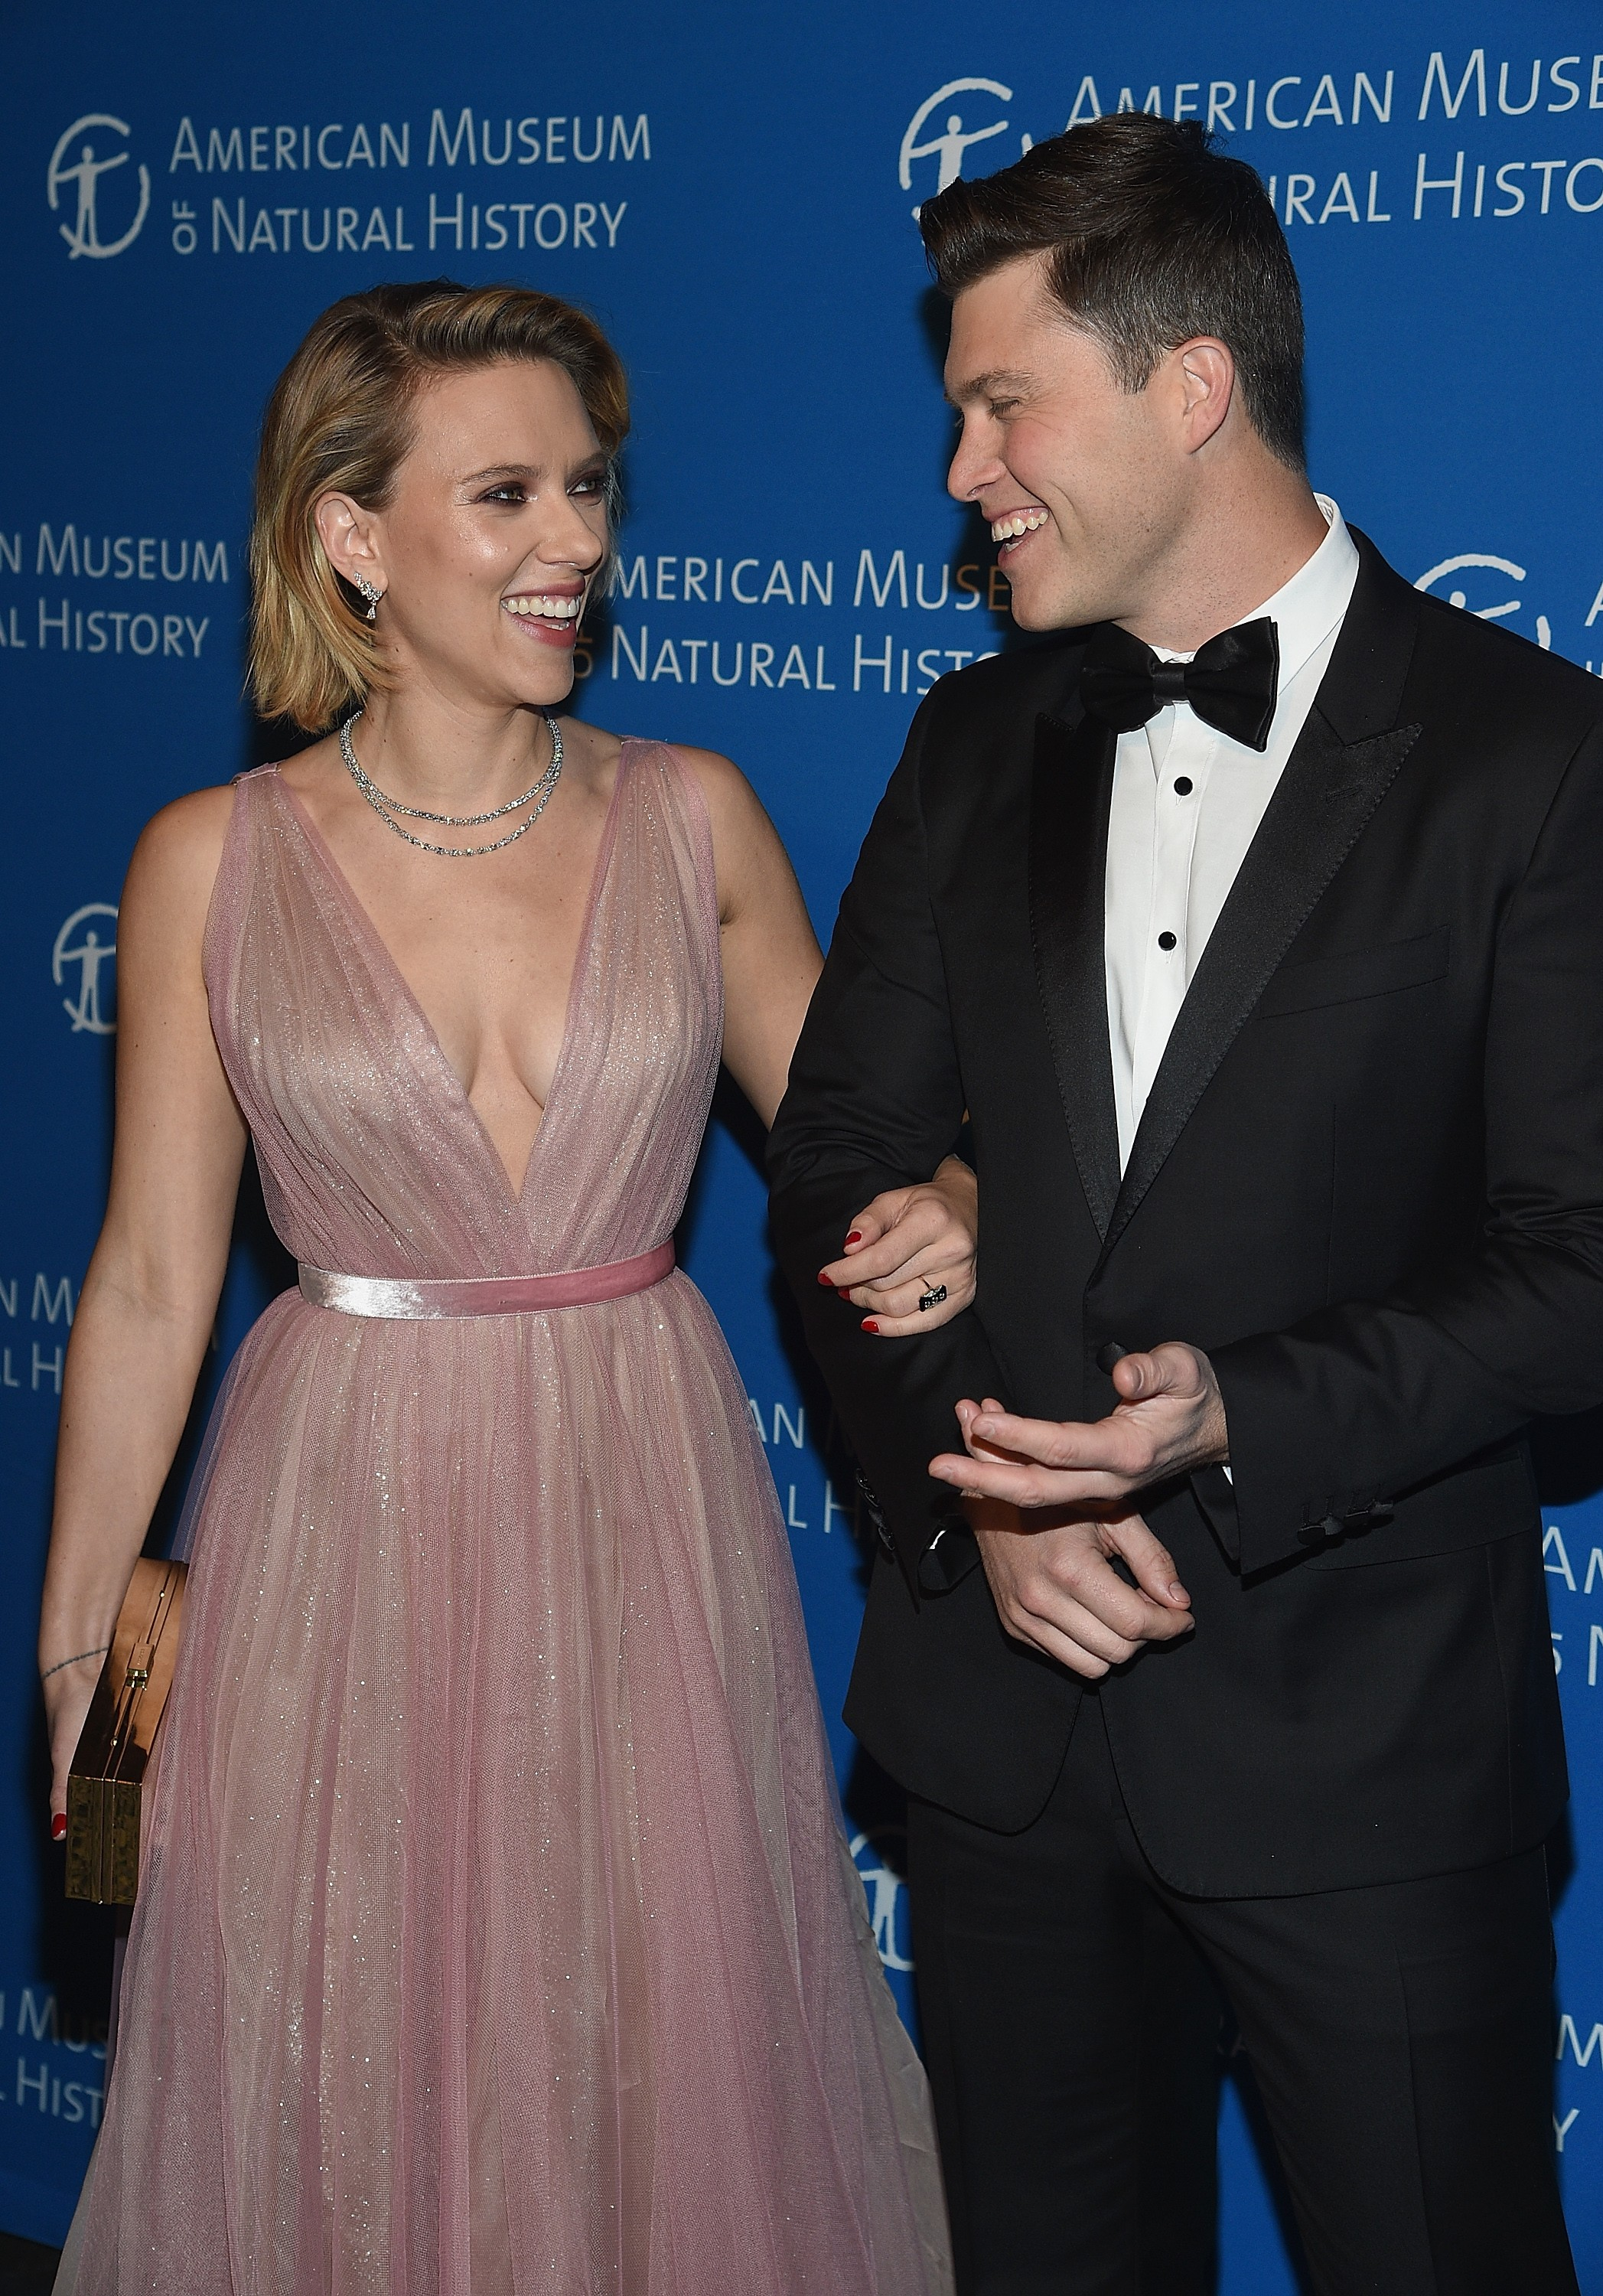 Hollywood actress Scarlett Johansson with her boyfriend, comedian Colin Jost (photo: Getty Images)